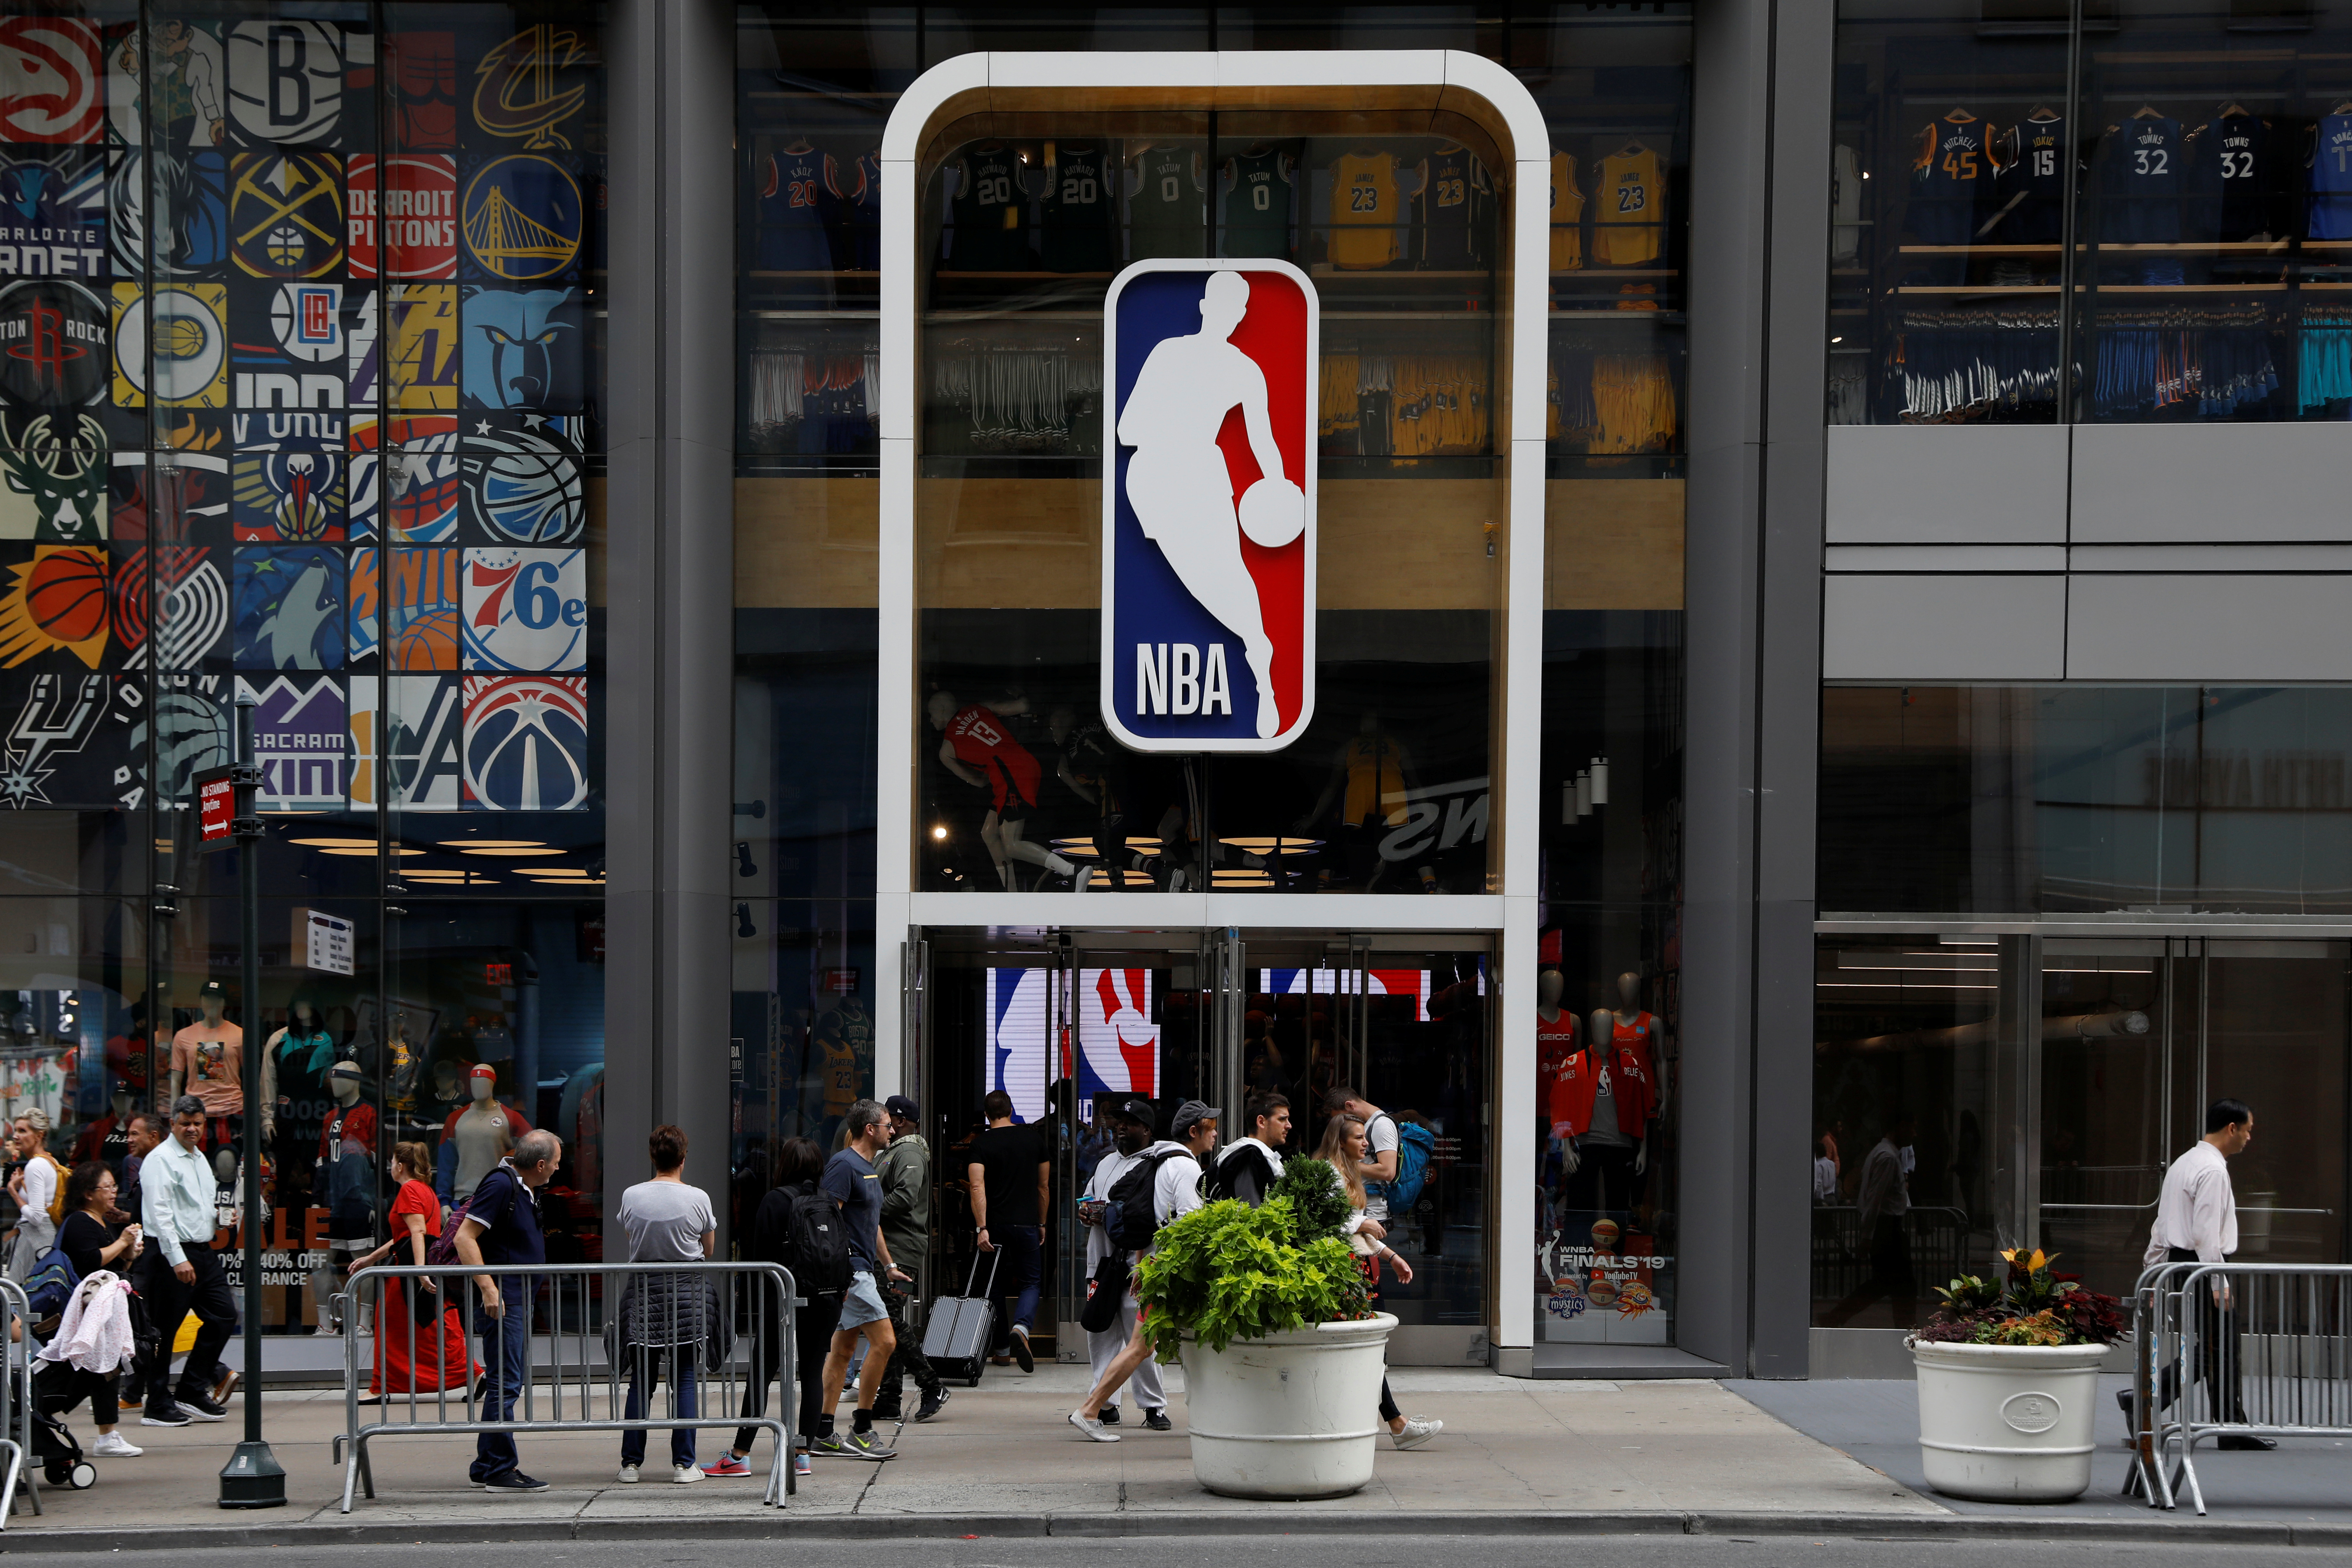 The NBA logo is displayed as people pass by the NBA Store in New York City, U.S., October 7, 2019. REUTERS/Brendan McDermid